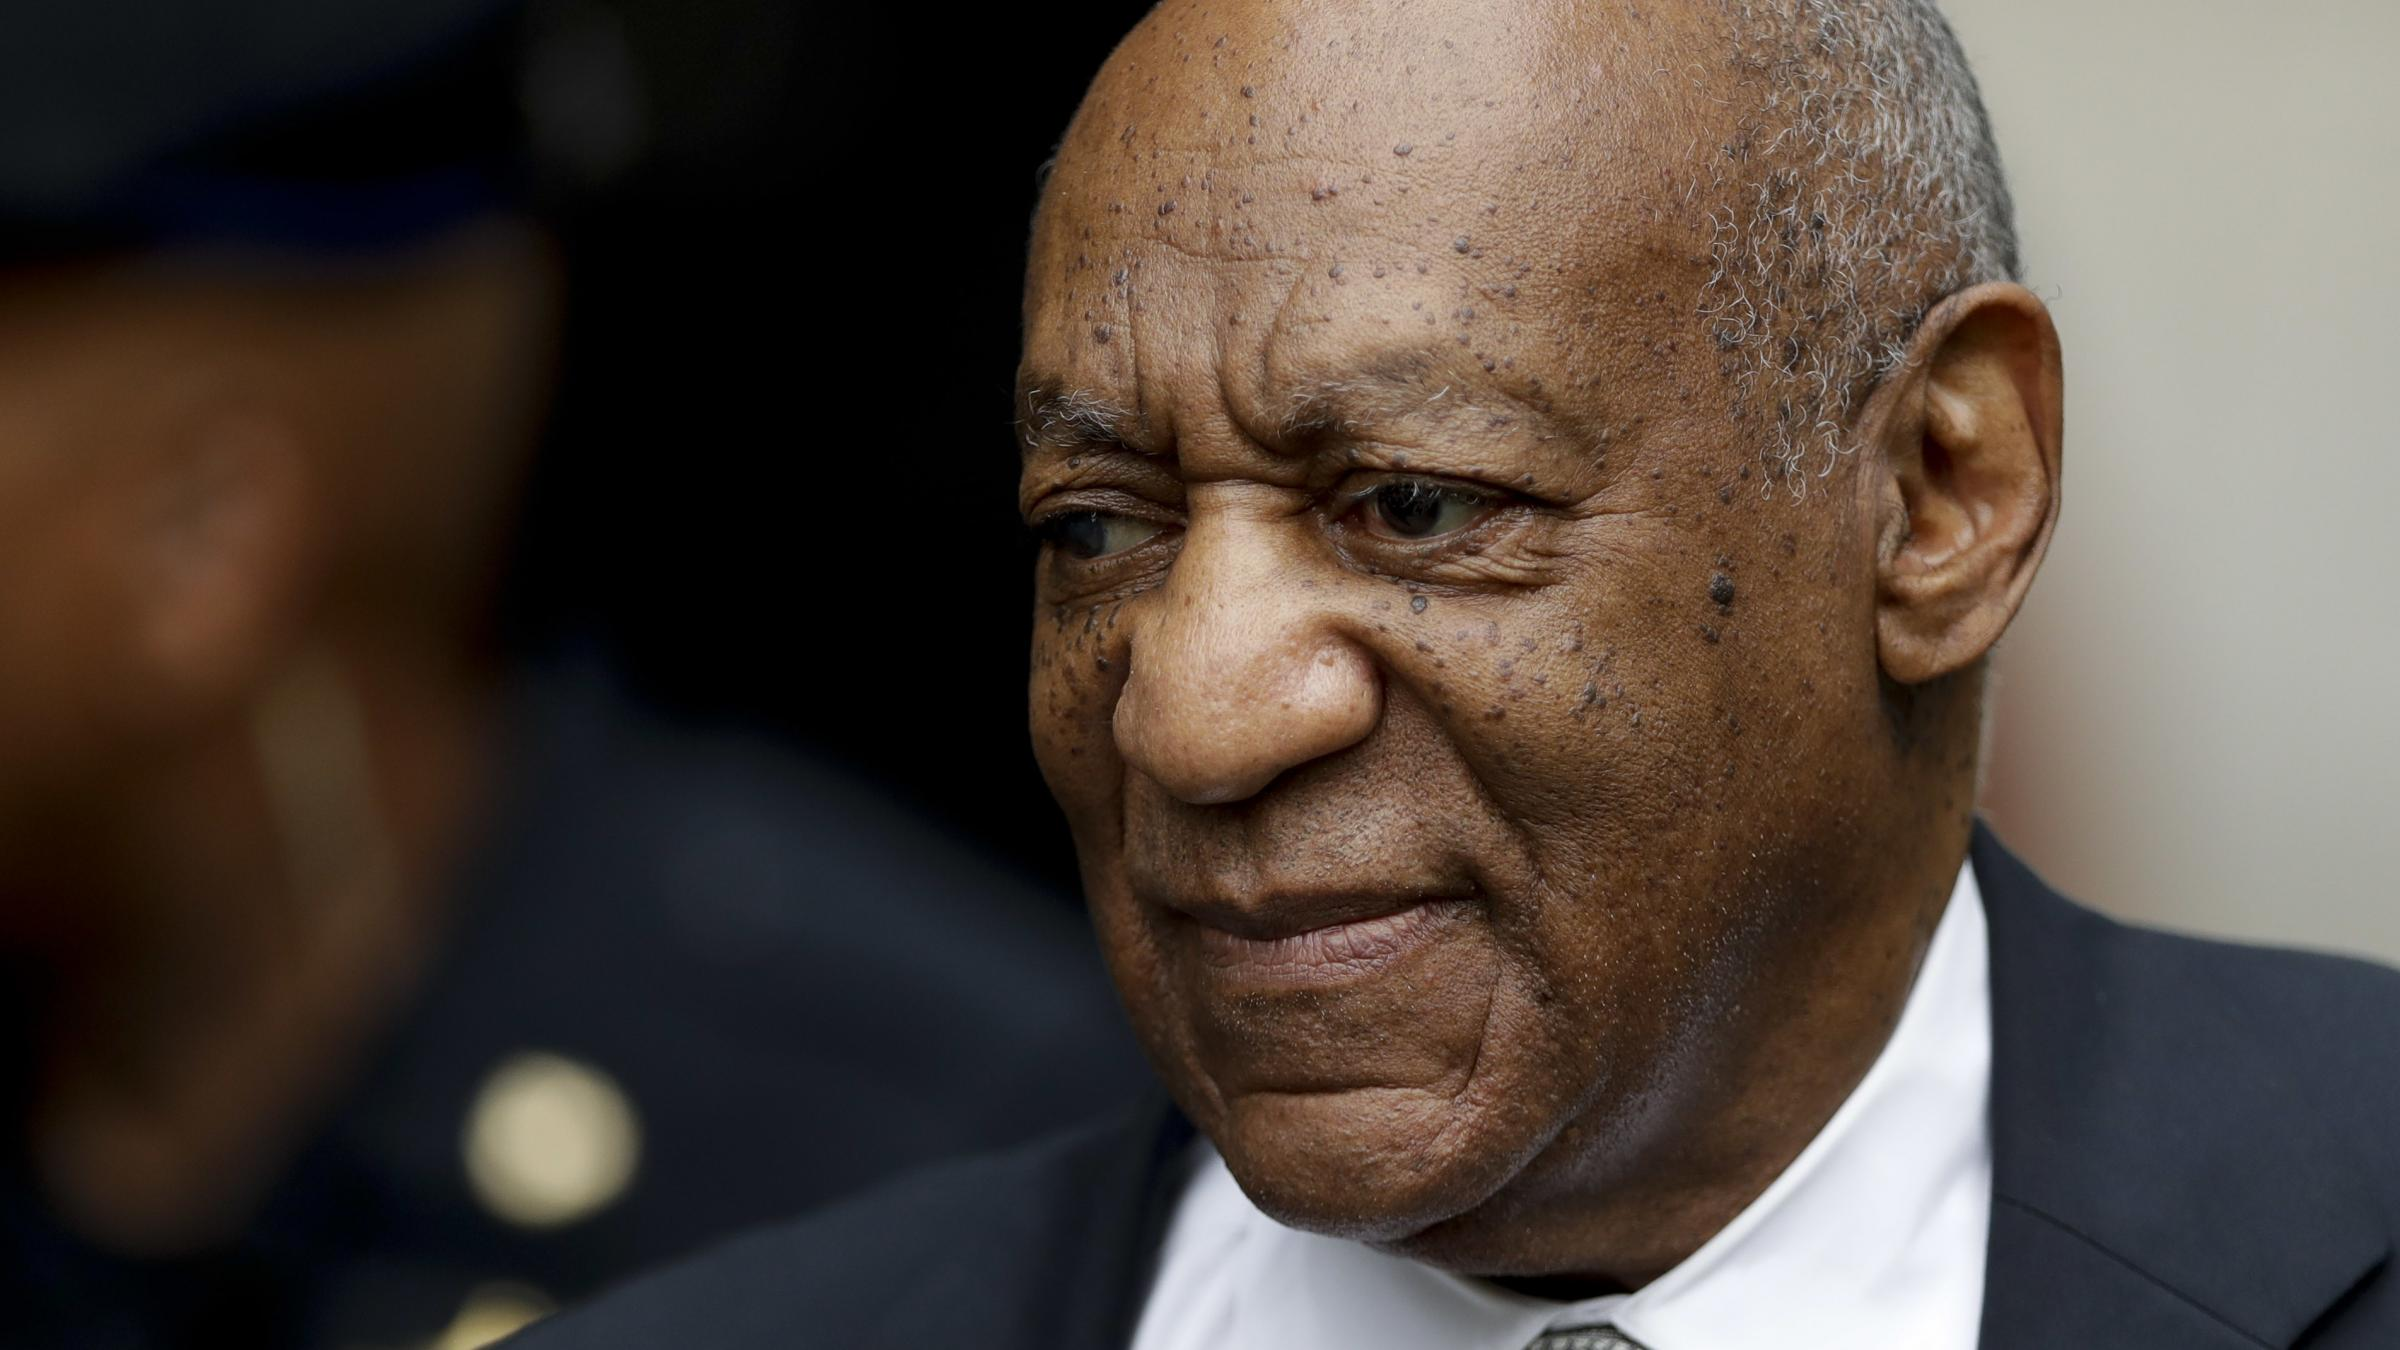 Bill Cosby's Sexual Assault Trial Declared a Mistrial, Following Jury Deadlock